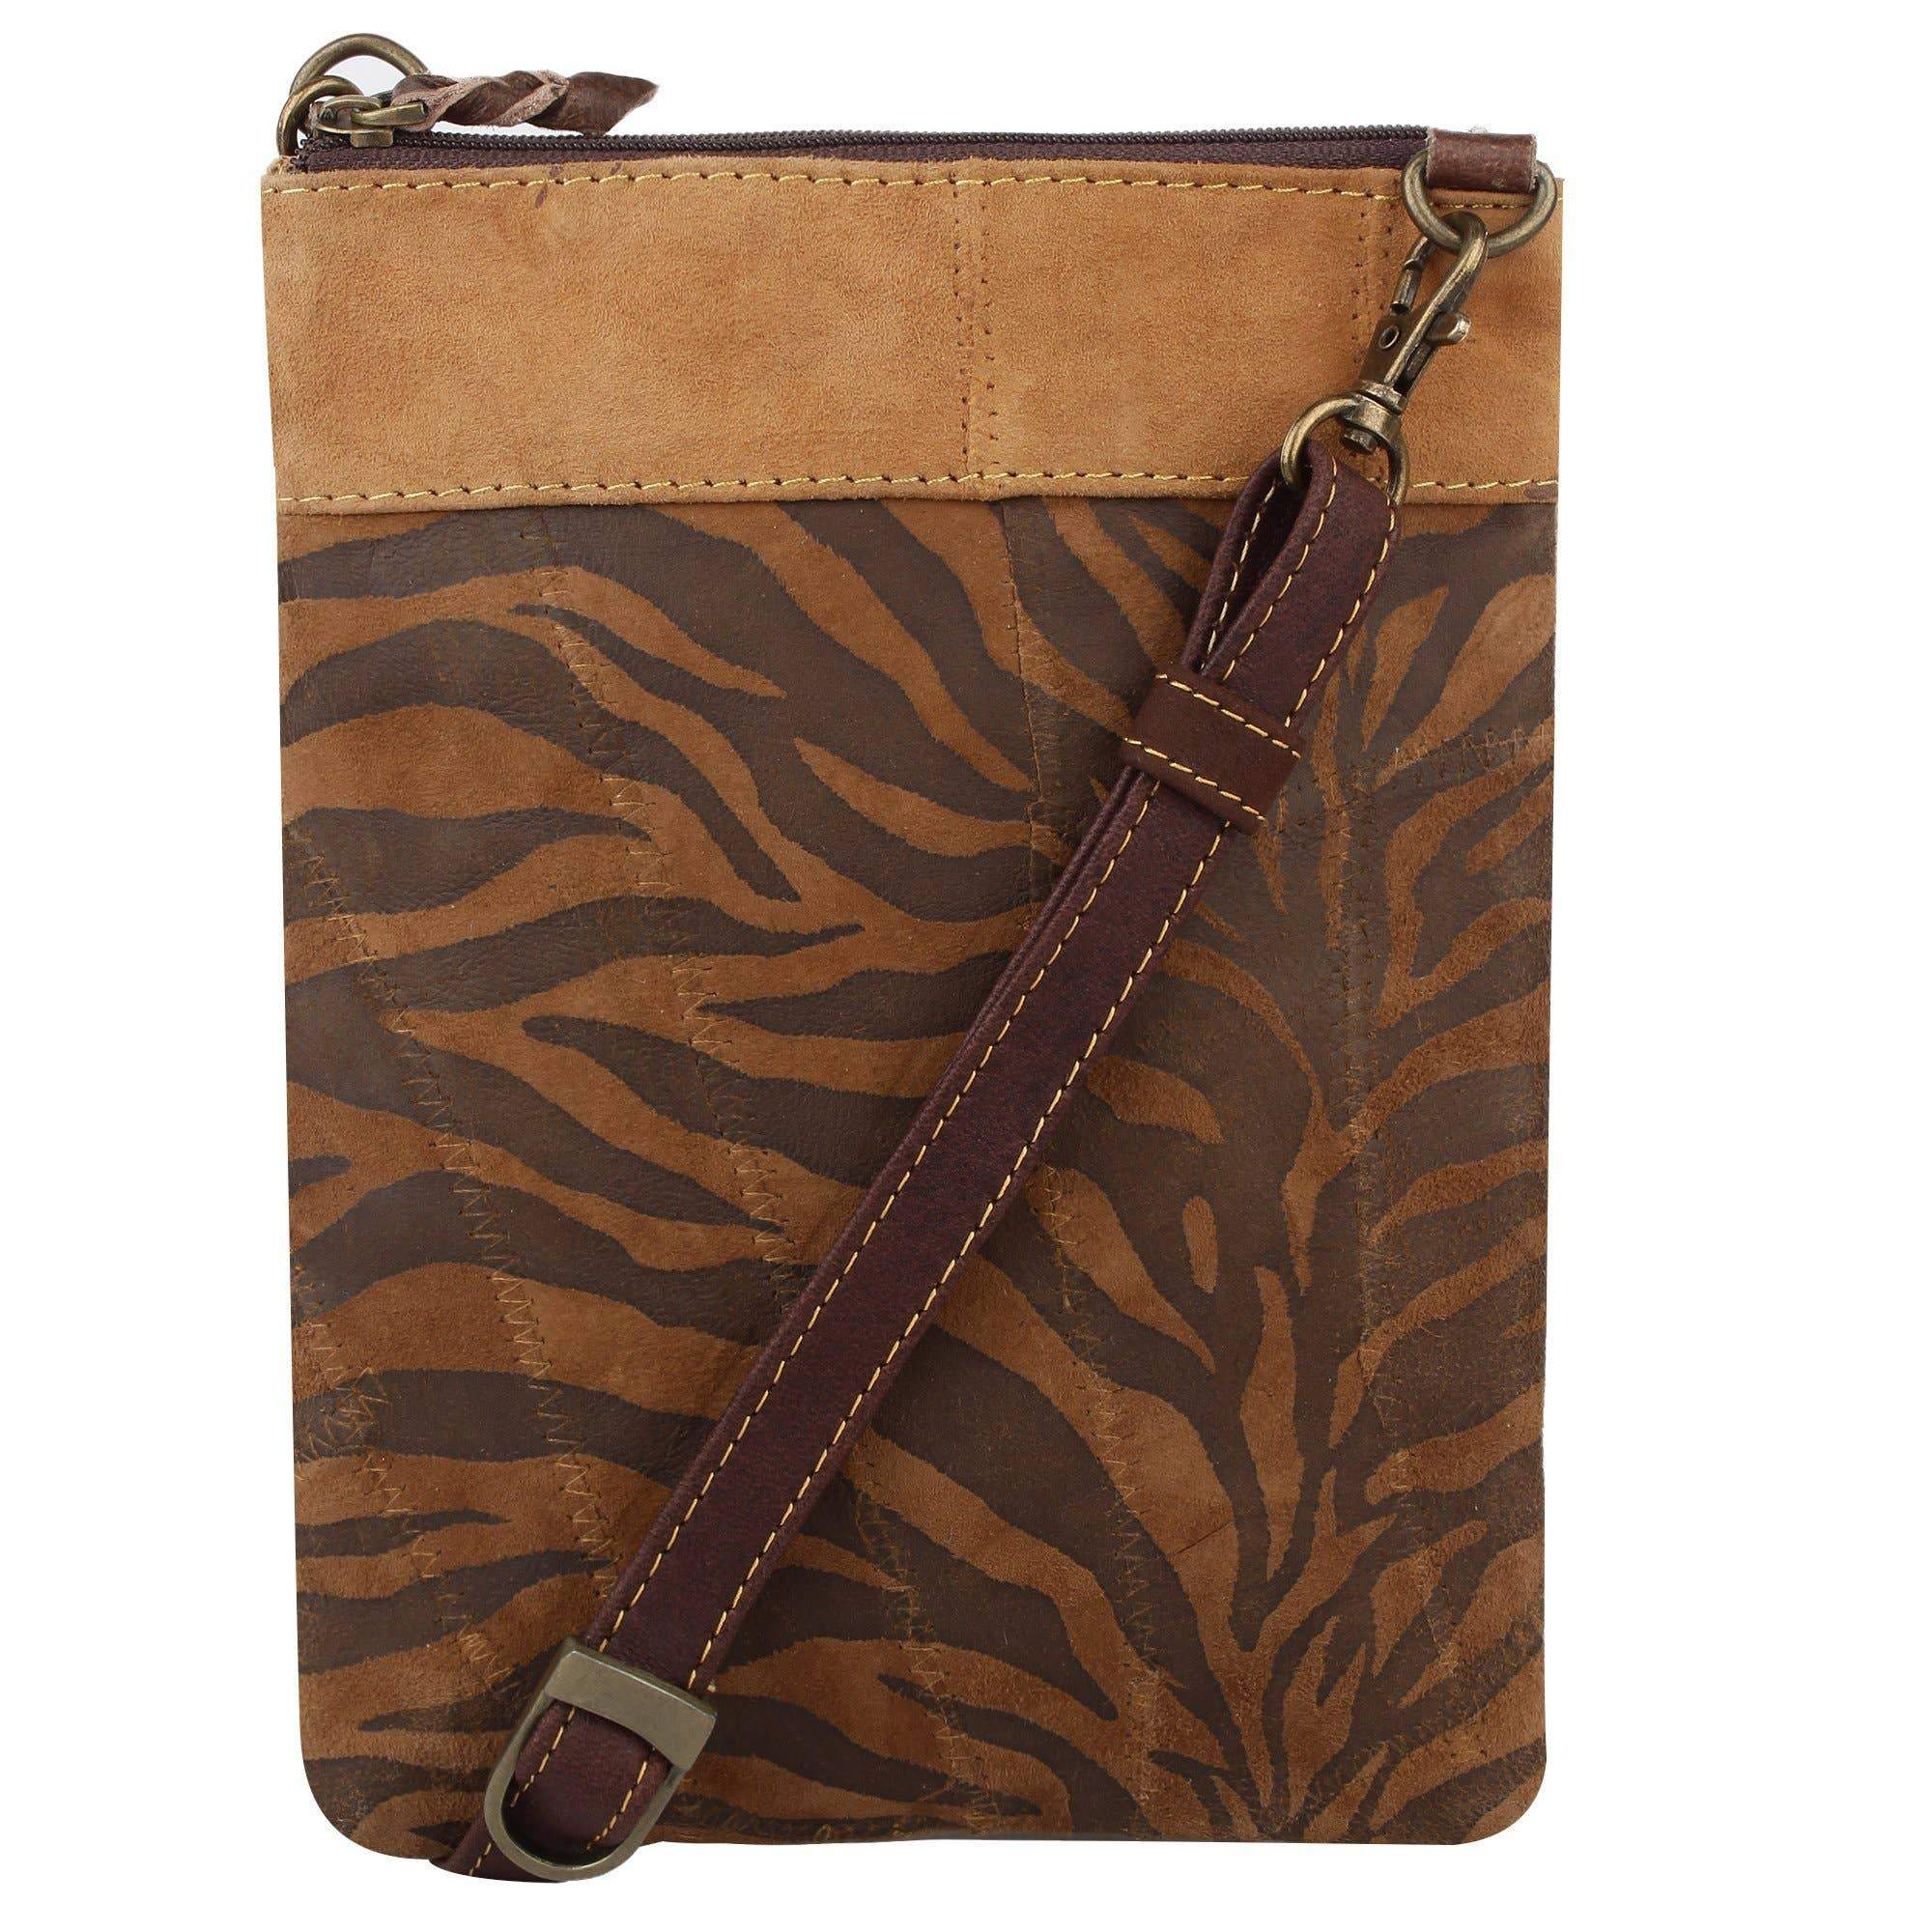 Tiger-Bags-Vaan & Co.-Tiger-Lizzy's Pink Boutique